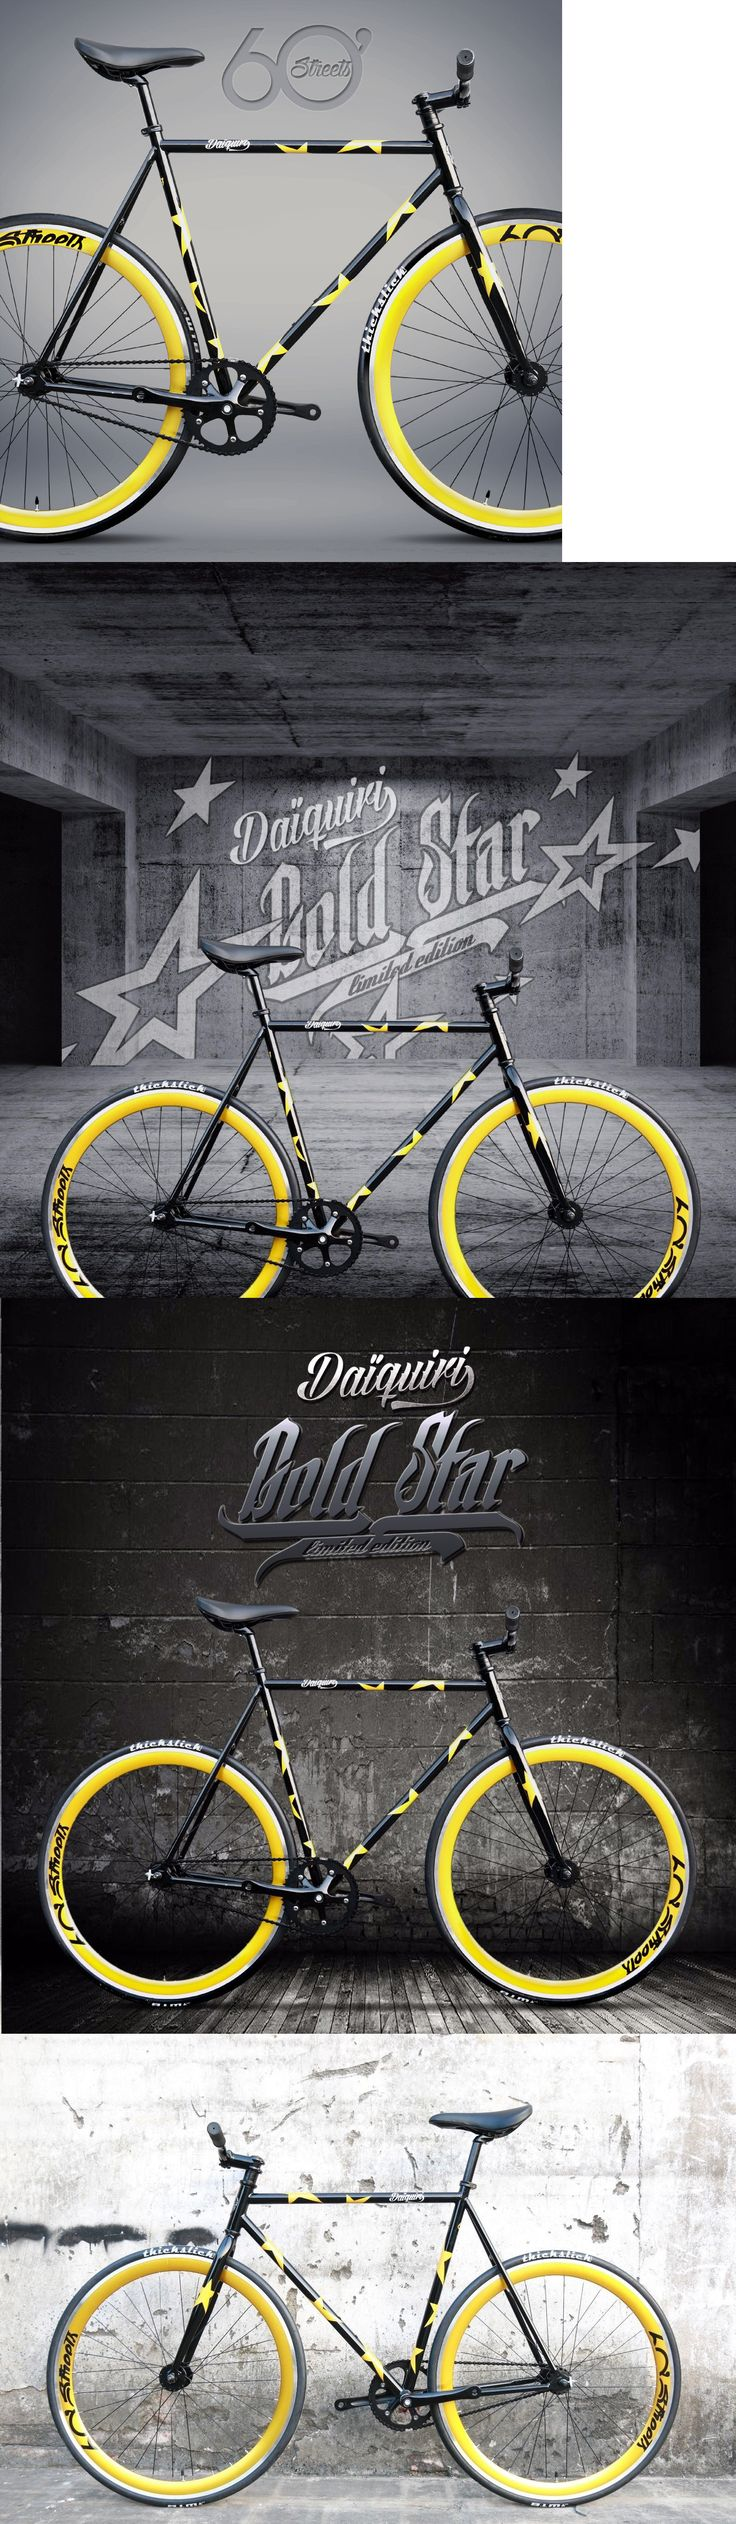 Vintage Bicycles 177858: Daiquiri Gold Star Limited Edition Fixed Gear Bike Fixie Single Speed Bicycle M BUY IT NOW ONLY: $299.0